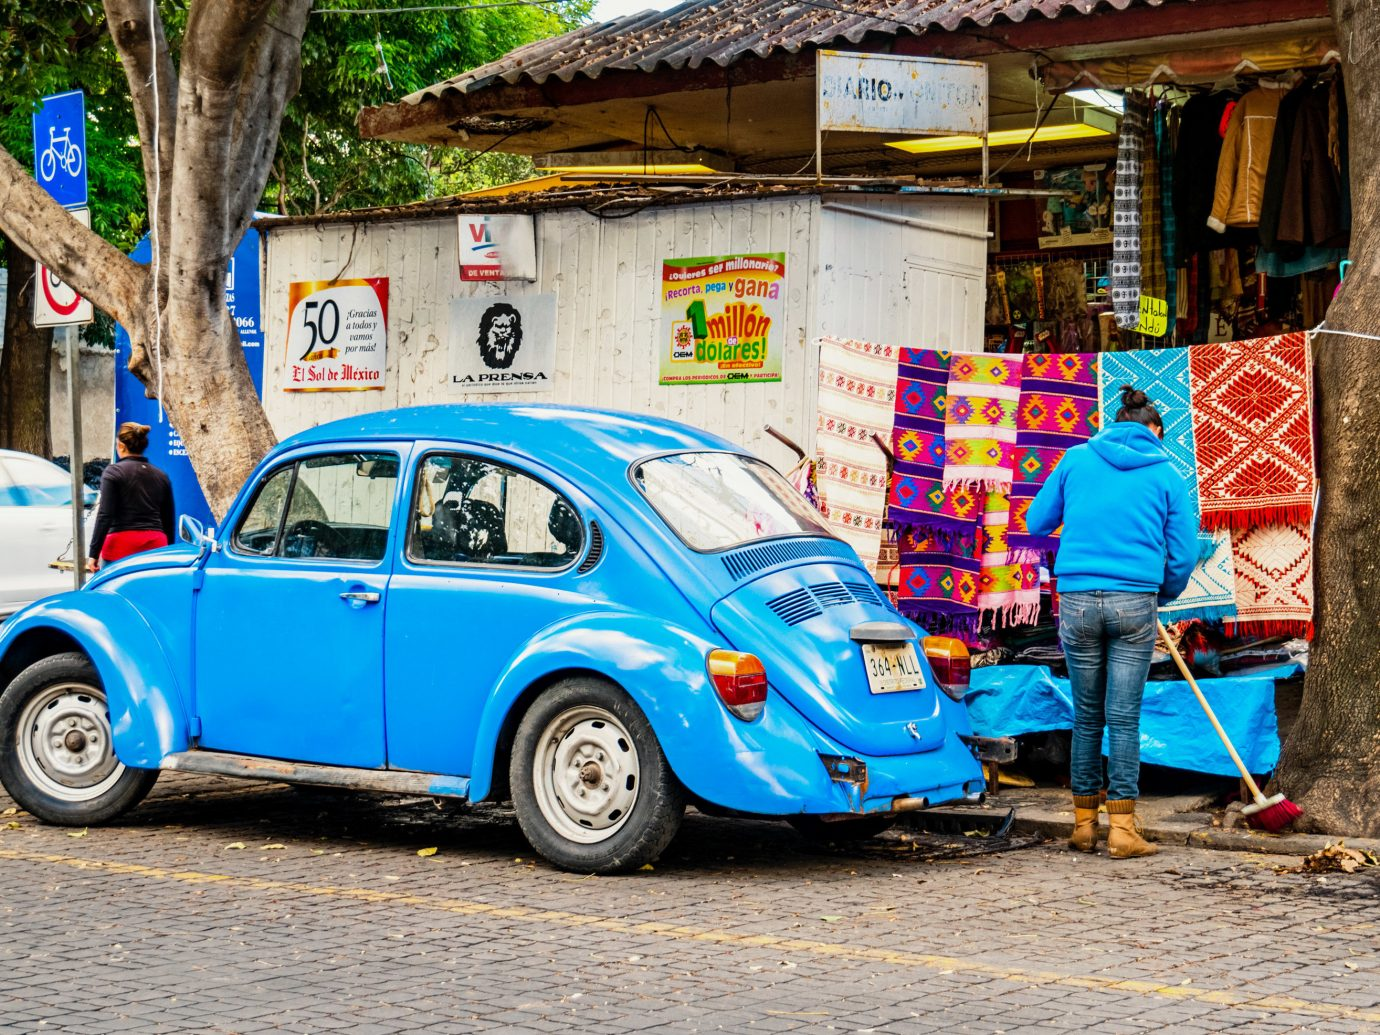 City Mexico City Trip Ideas outdoor building car motor vehicle vehicle volkswagen beetle automotive design Classic blue vintage car subcompact car street antique car parked compact car volkswagen automotive exterior